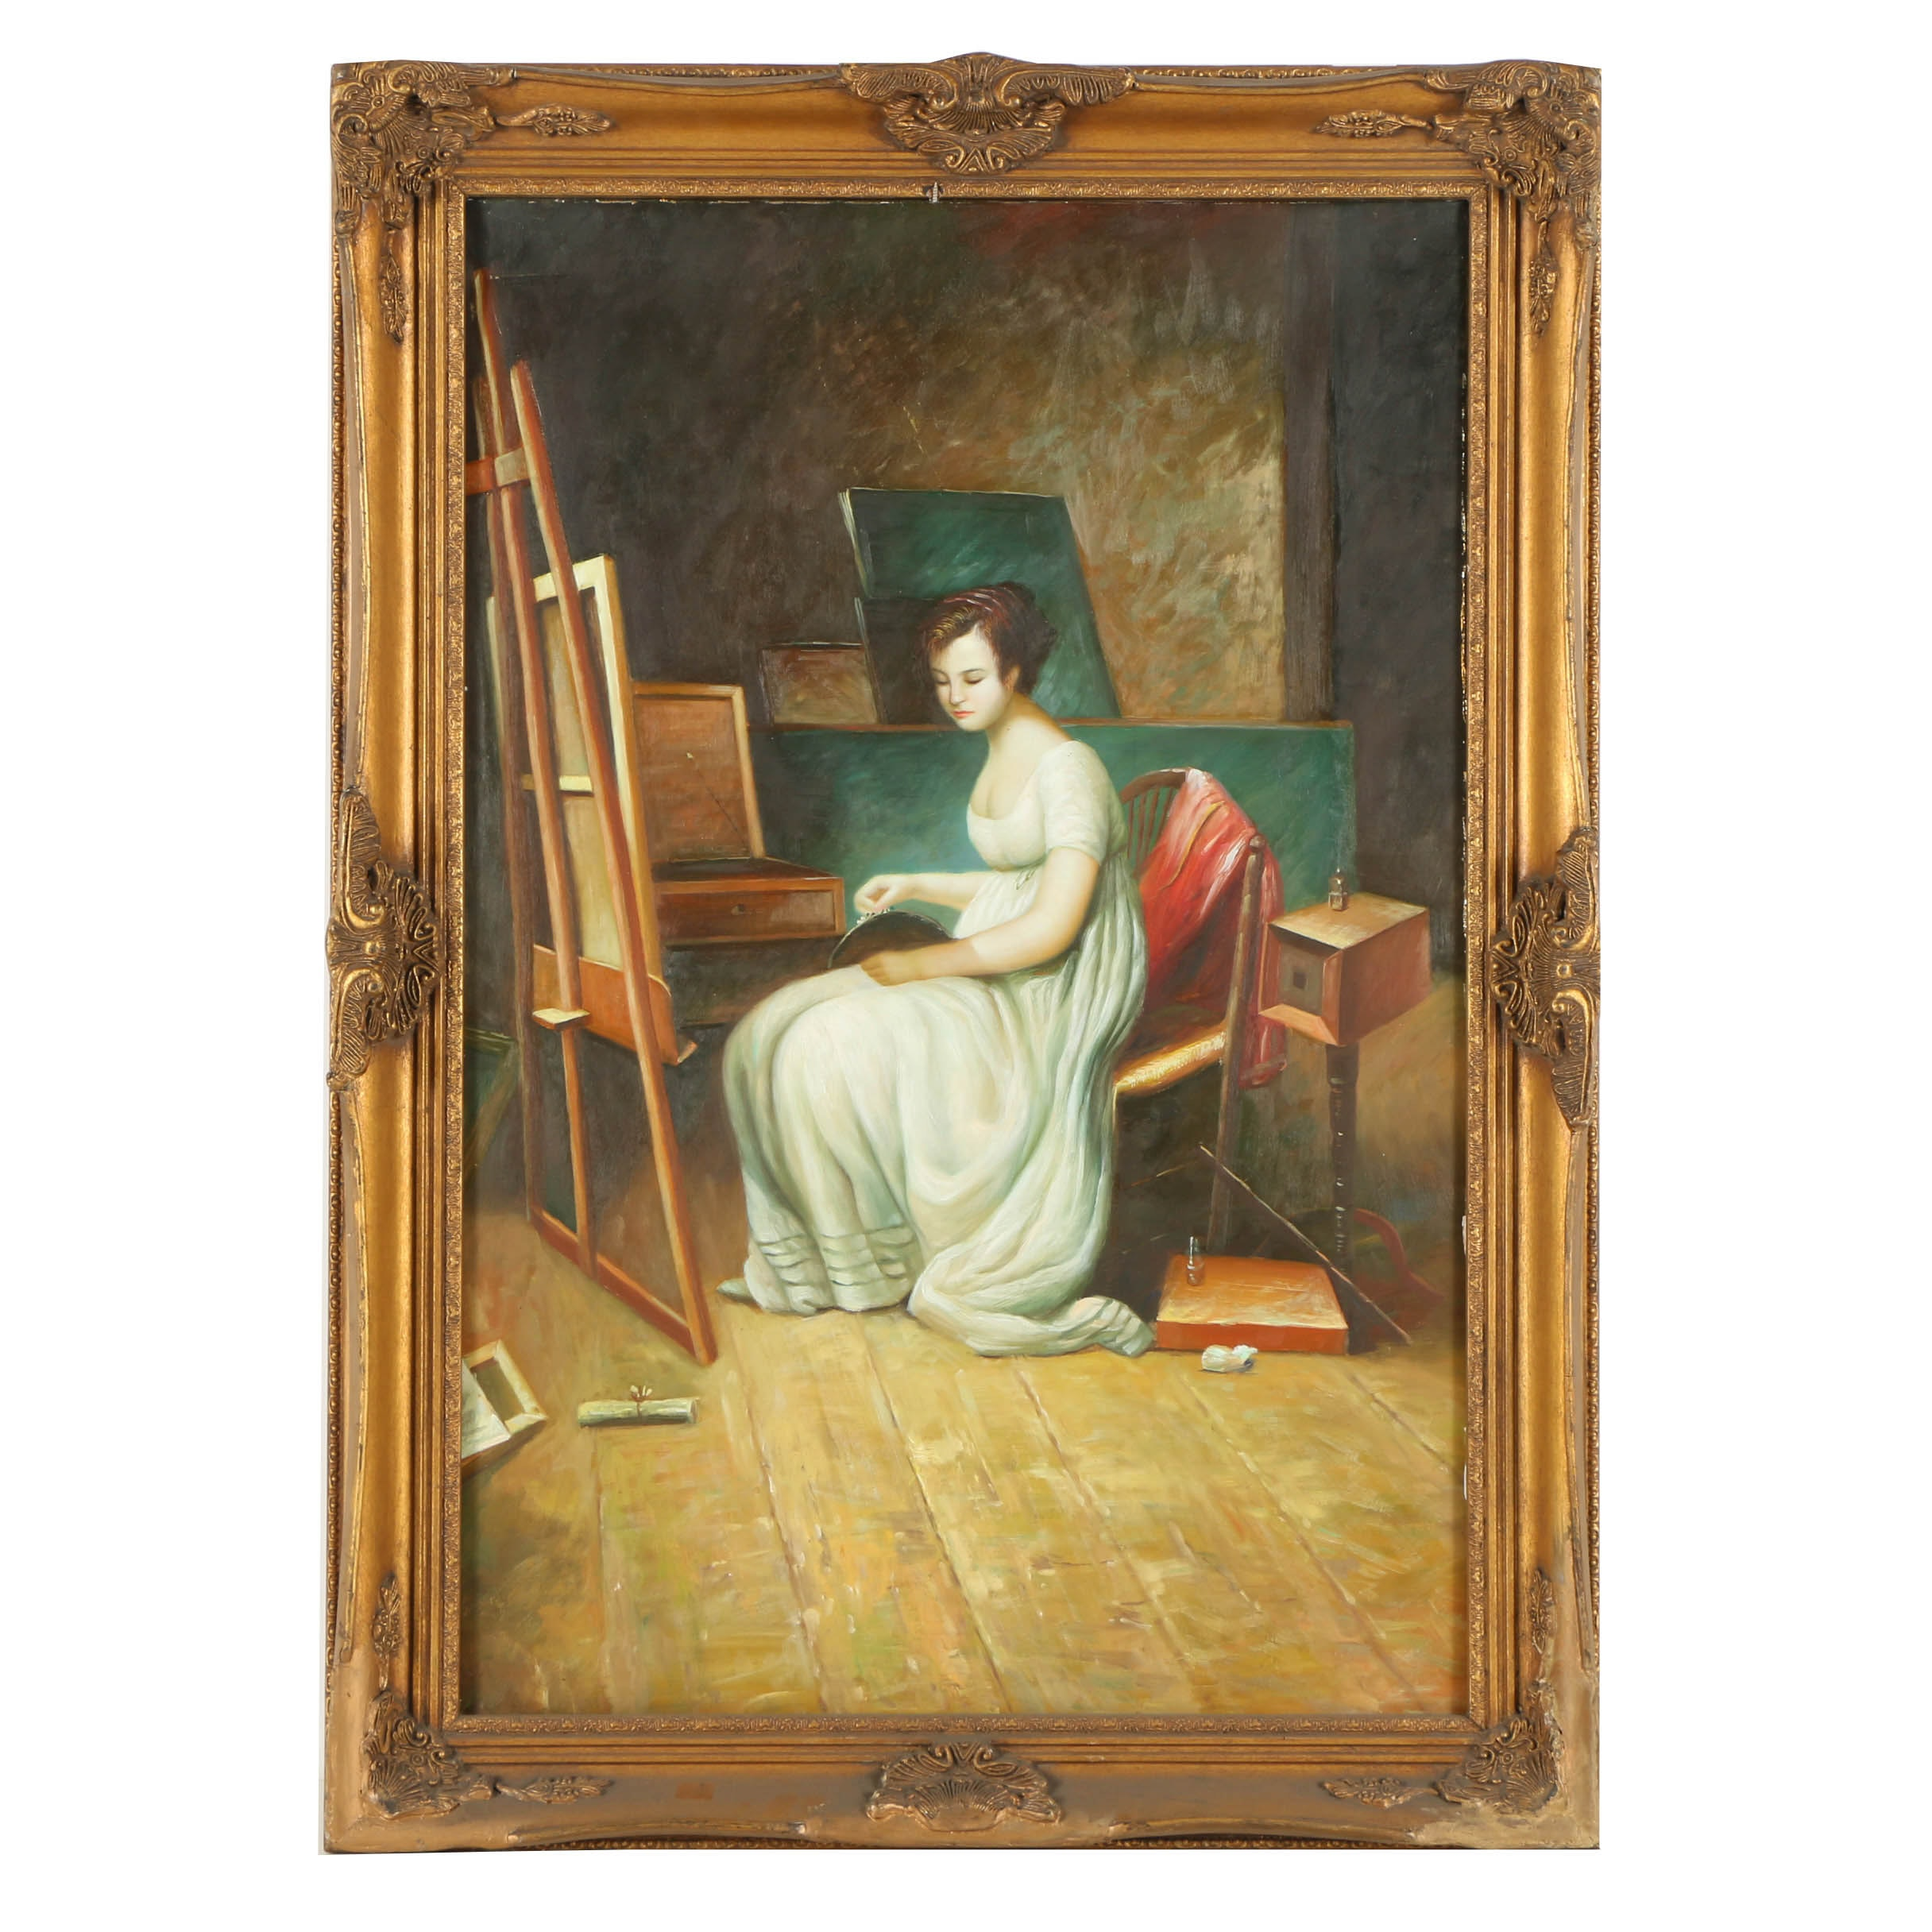 Oil Painting on Canvas of Woman in Studio